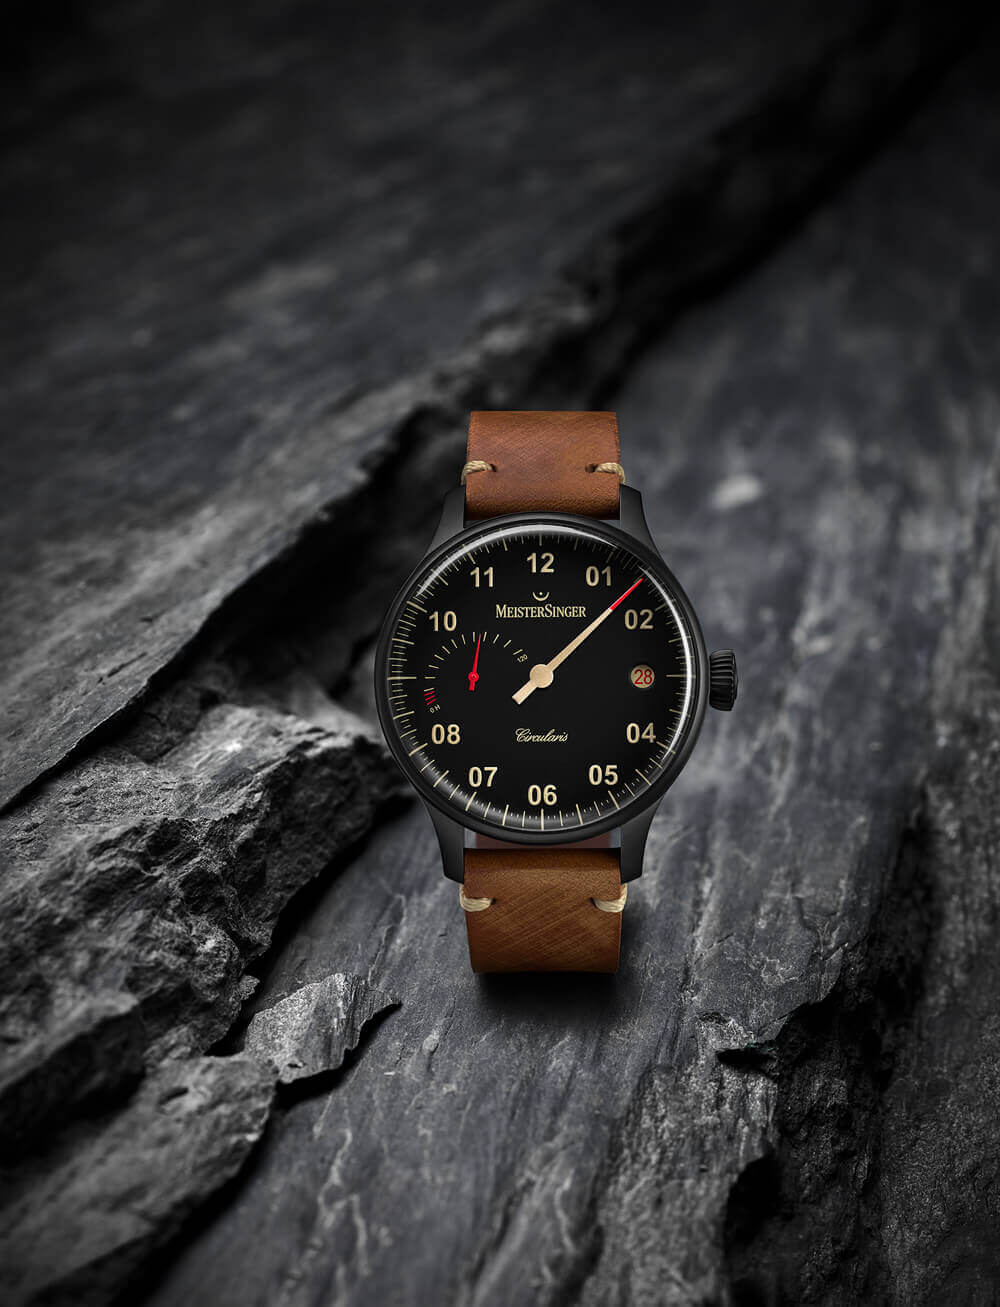 MeisterSinger Circularis Power Reserve Black Line - hand wound watch with power-reserve indicator